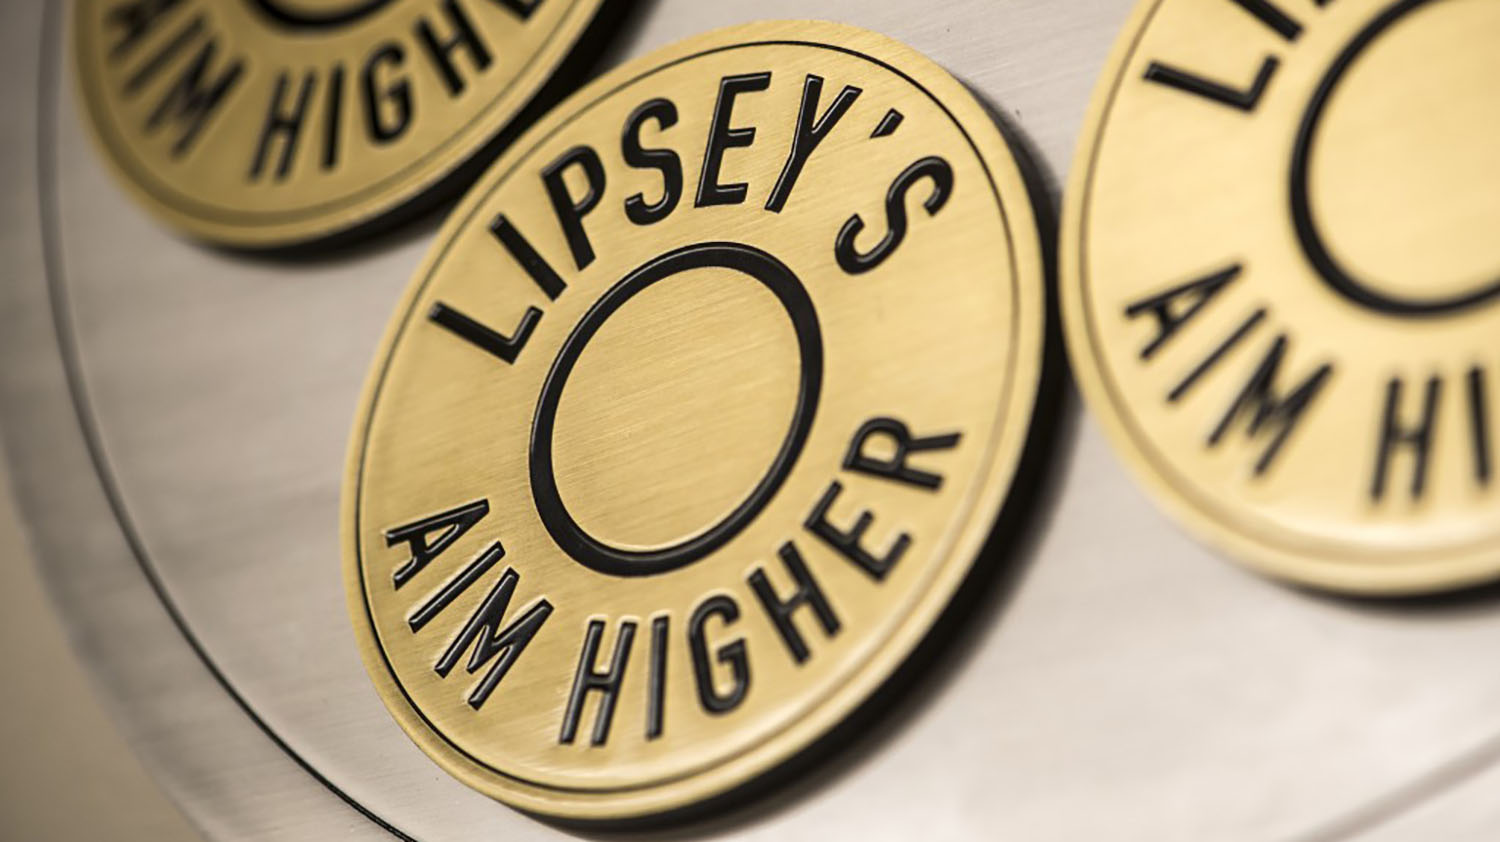 Lipsey's | Aim Higher